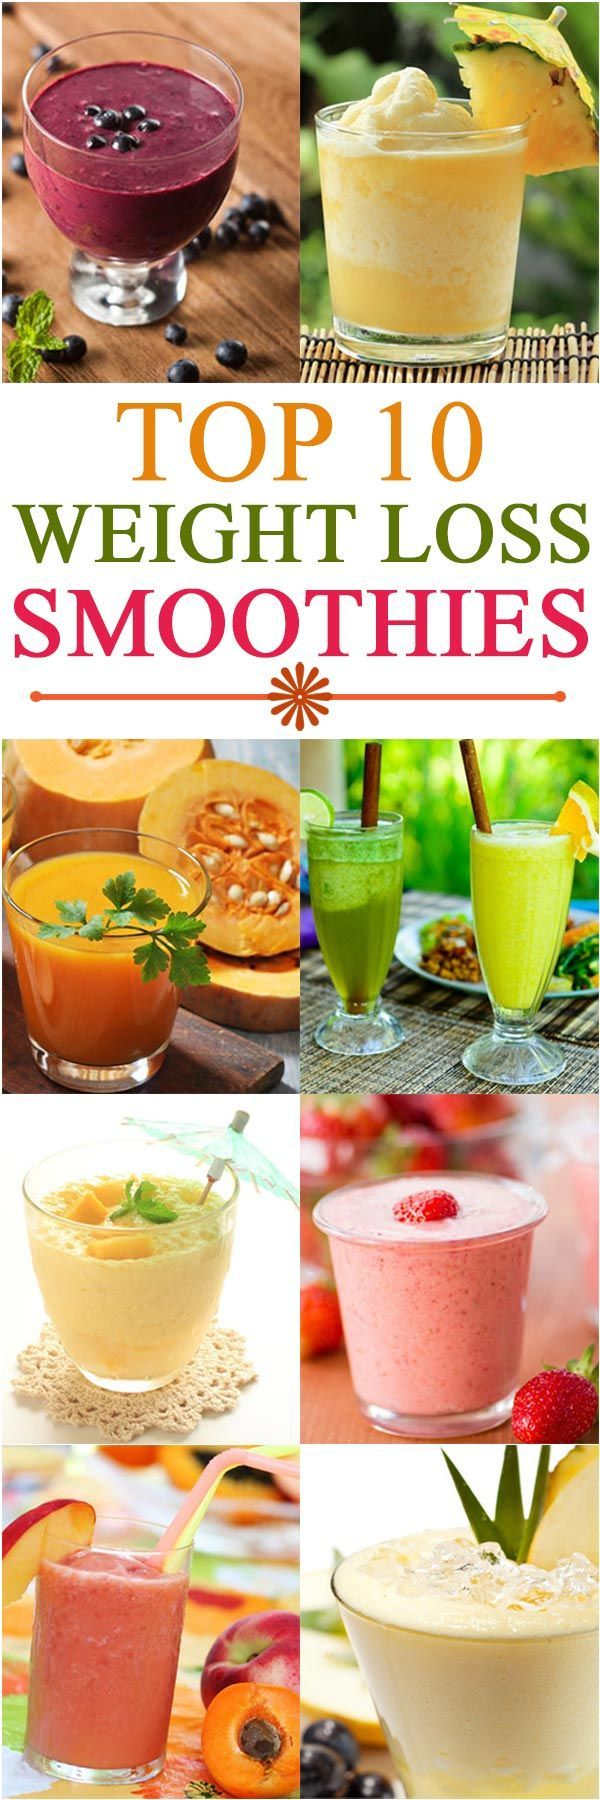 weightloss : All you  weightloss : All you need to make weight loss smoothie is a blender and some basic ingredients like fresh fruits and vegetables. Given below are the top ten weight loss smoothies and their recipes.  https://www.pinterest.com/pin/436989970077495167/